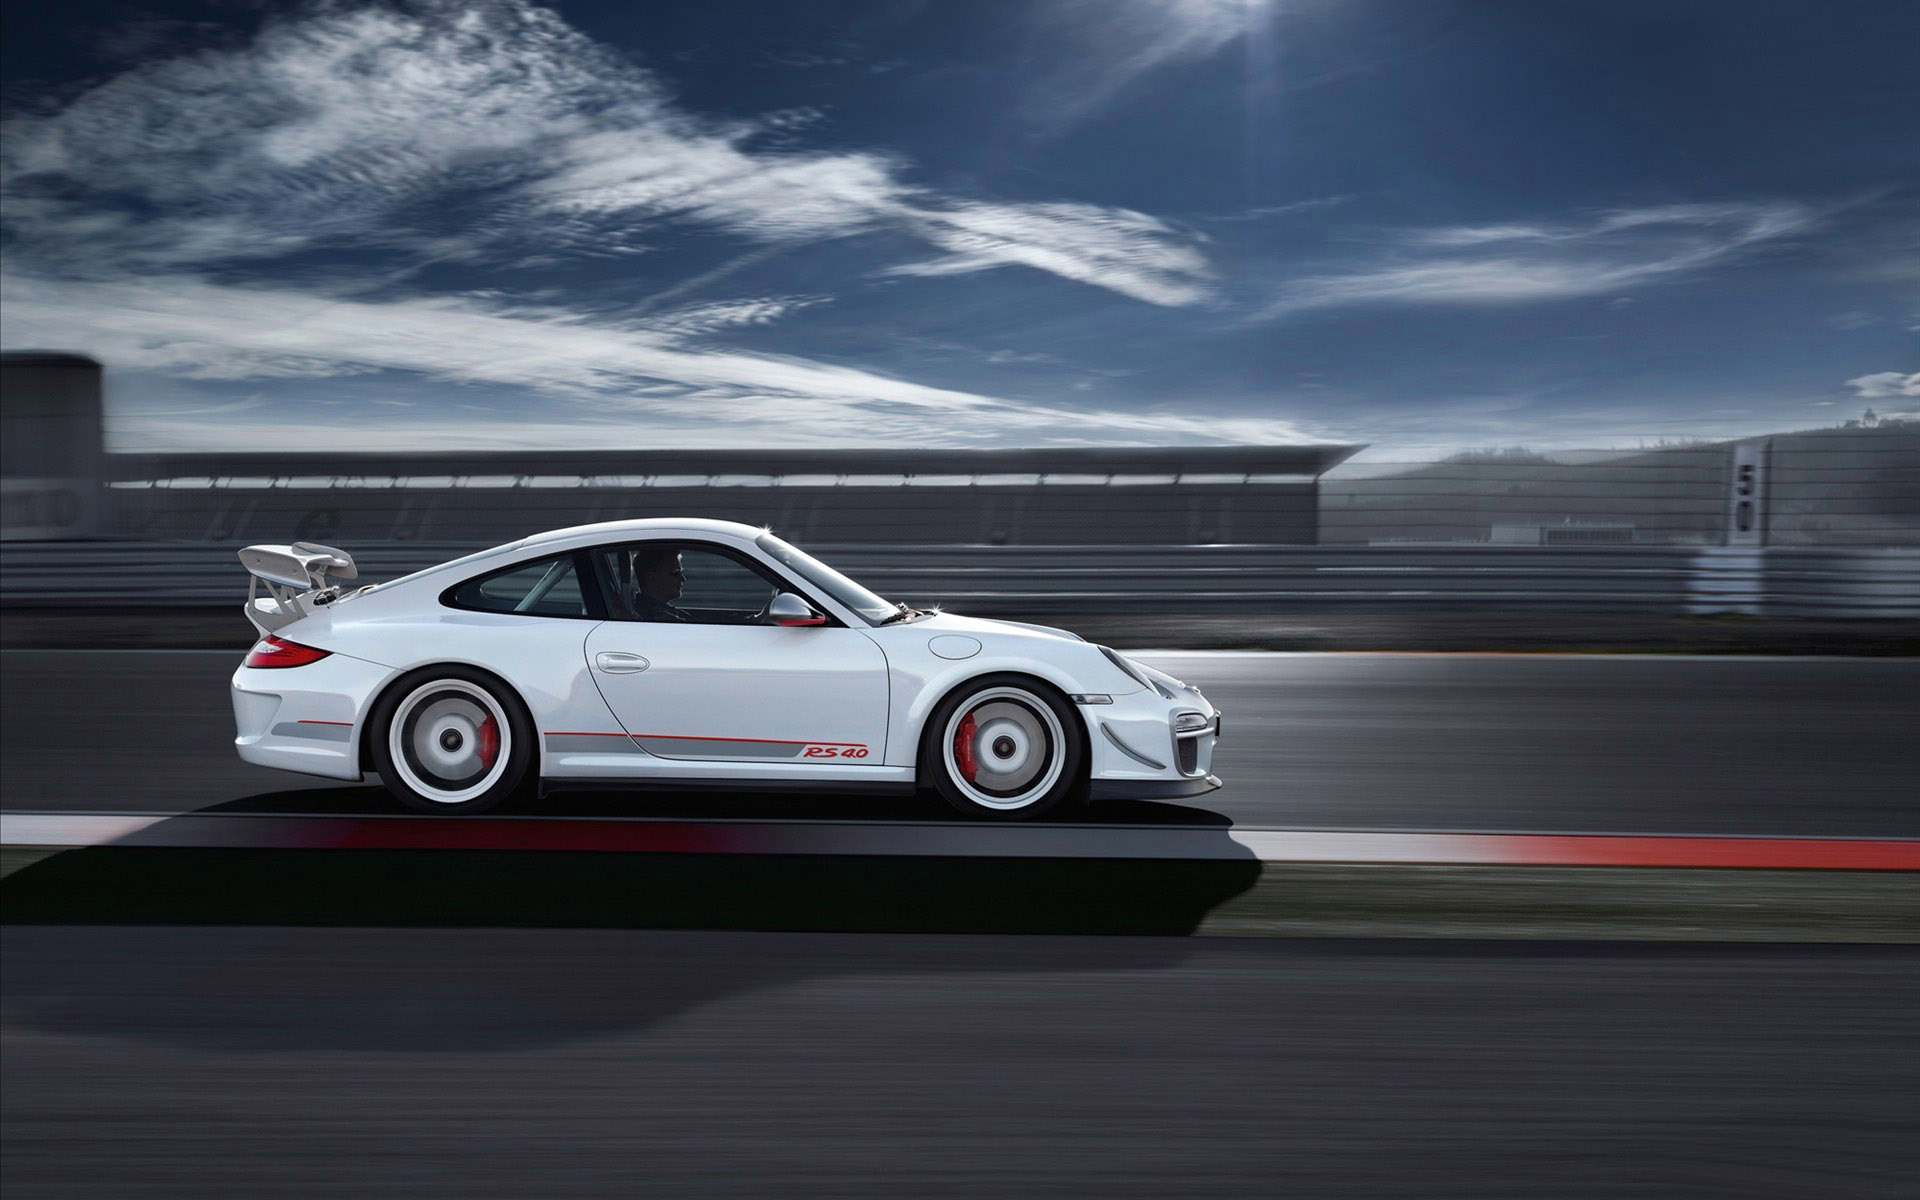 download free Stunnic Porsche 911 GT3 Hd Wallpaper